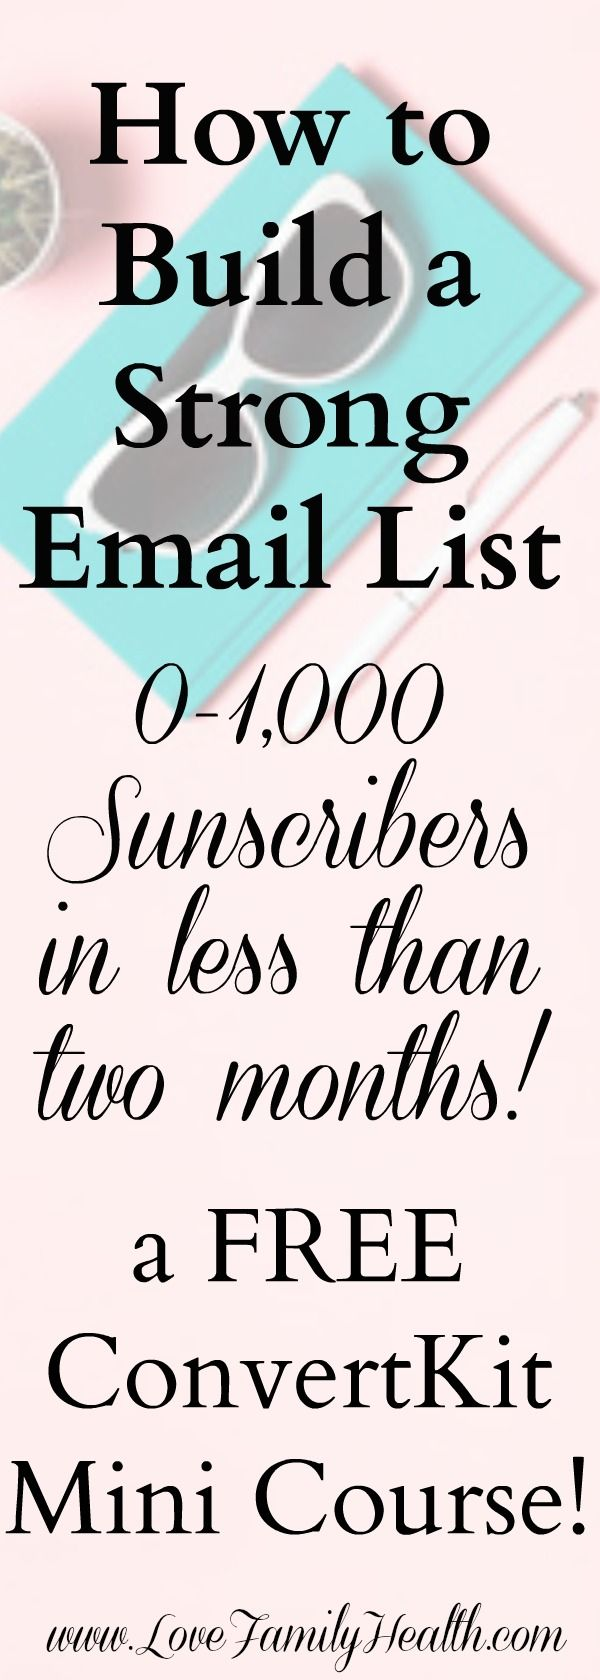 How to rapidly grow your email list and get more subscribers!